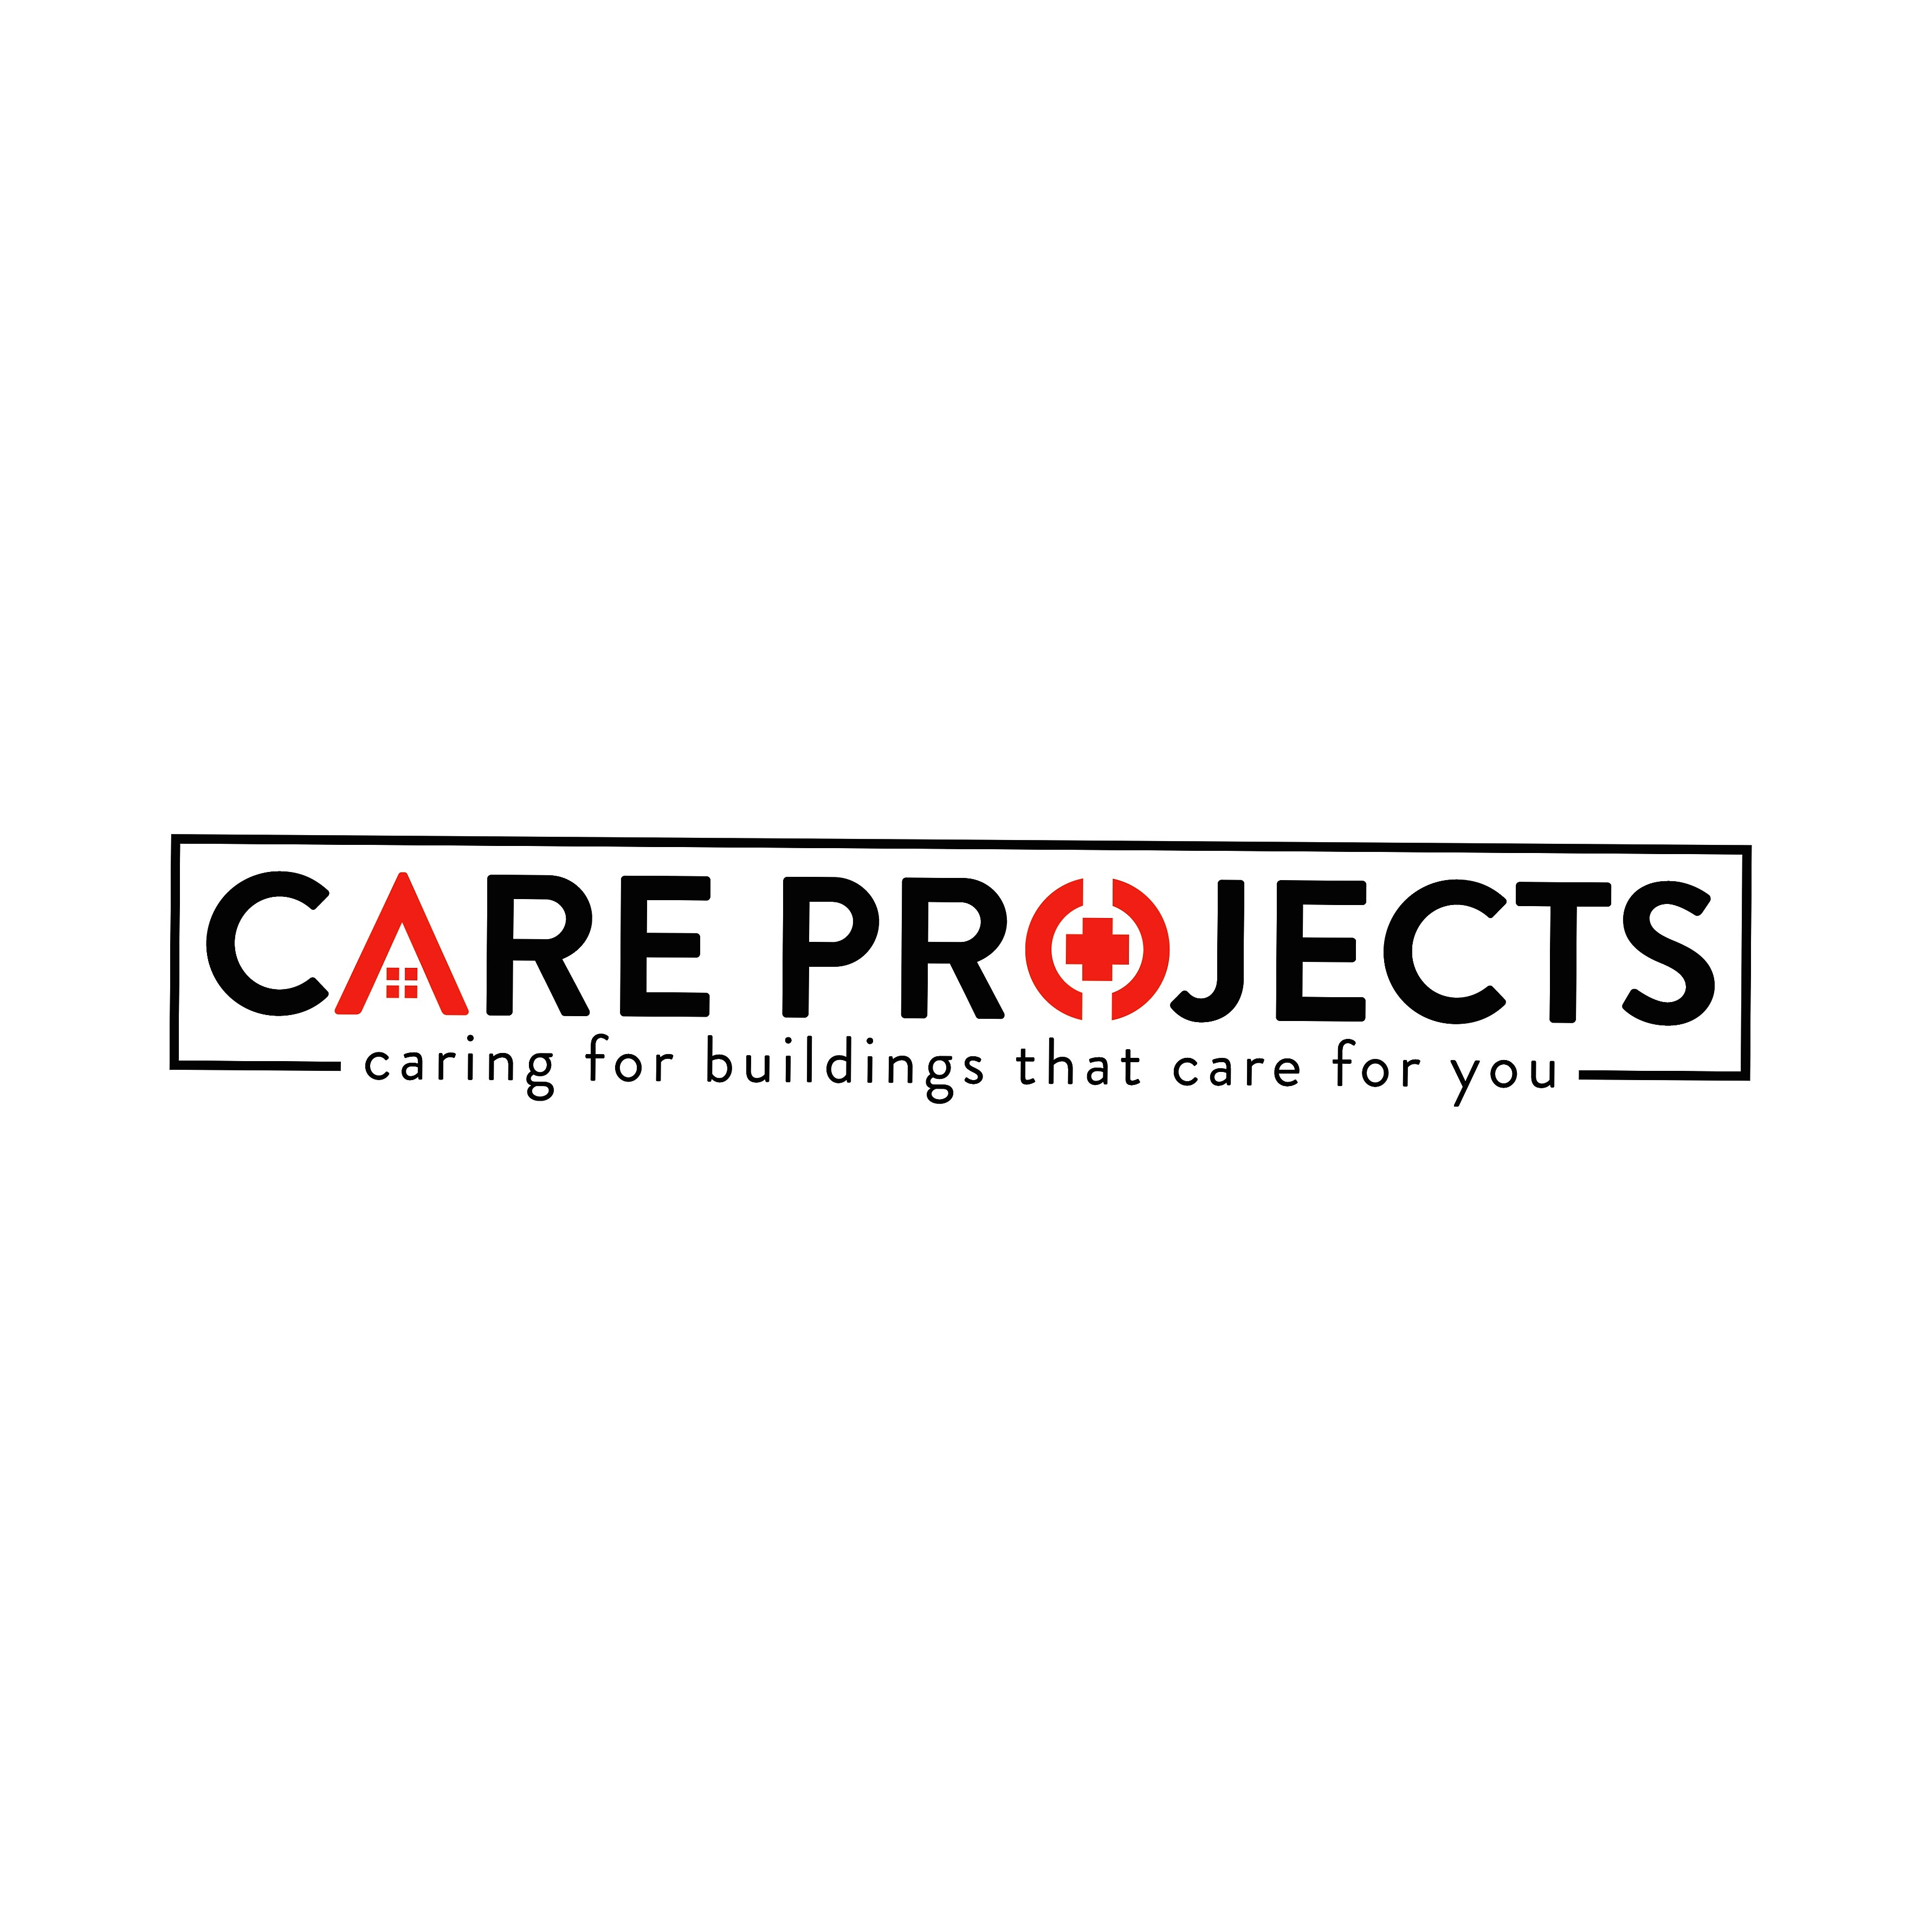 Care Projects